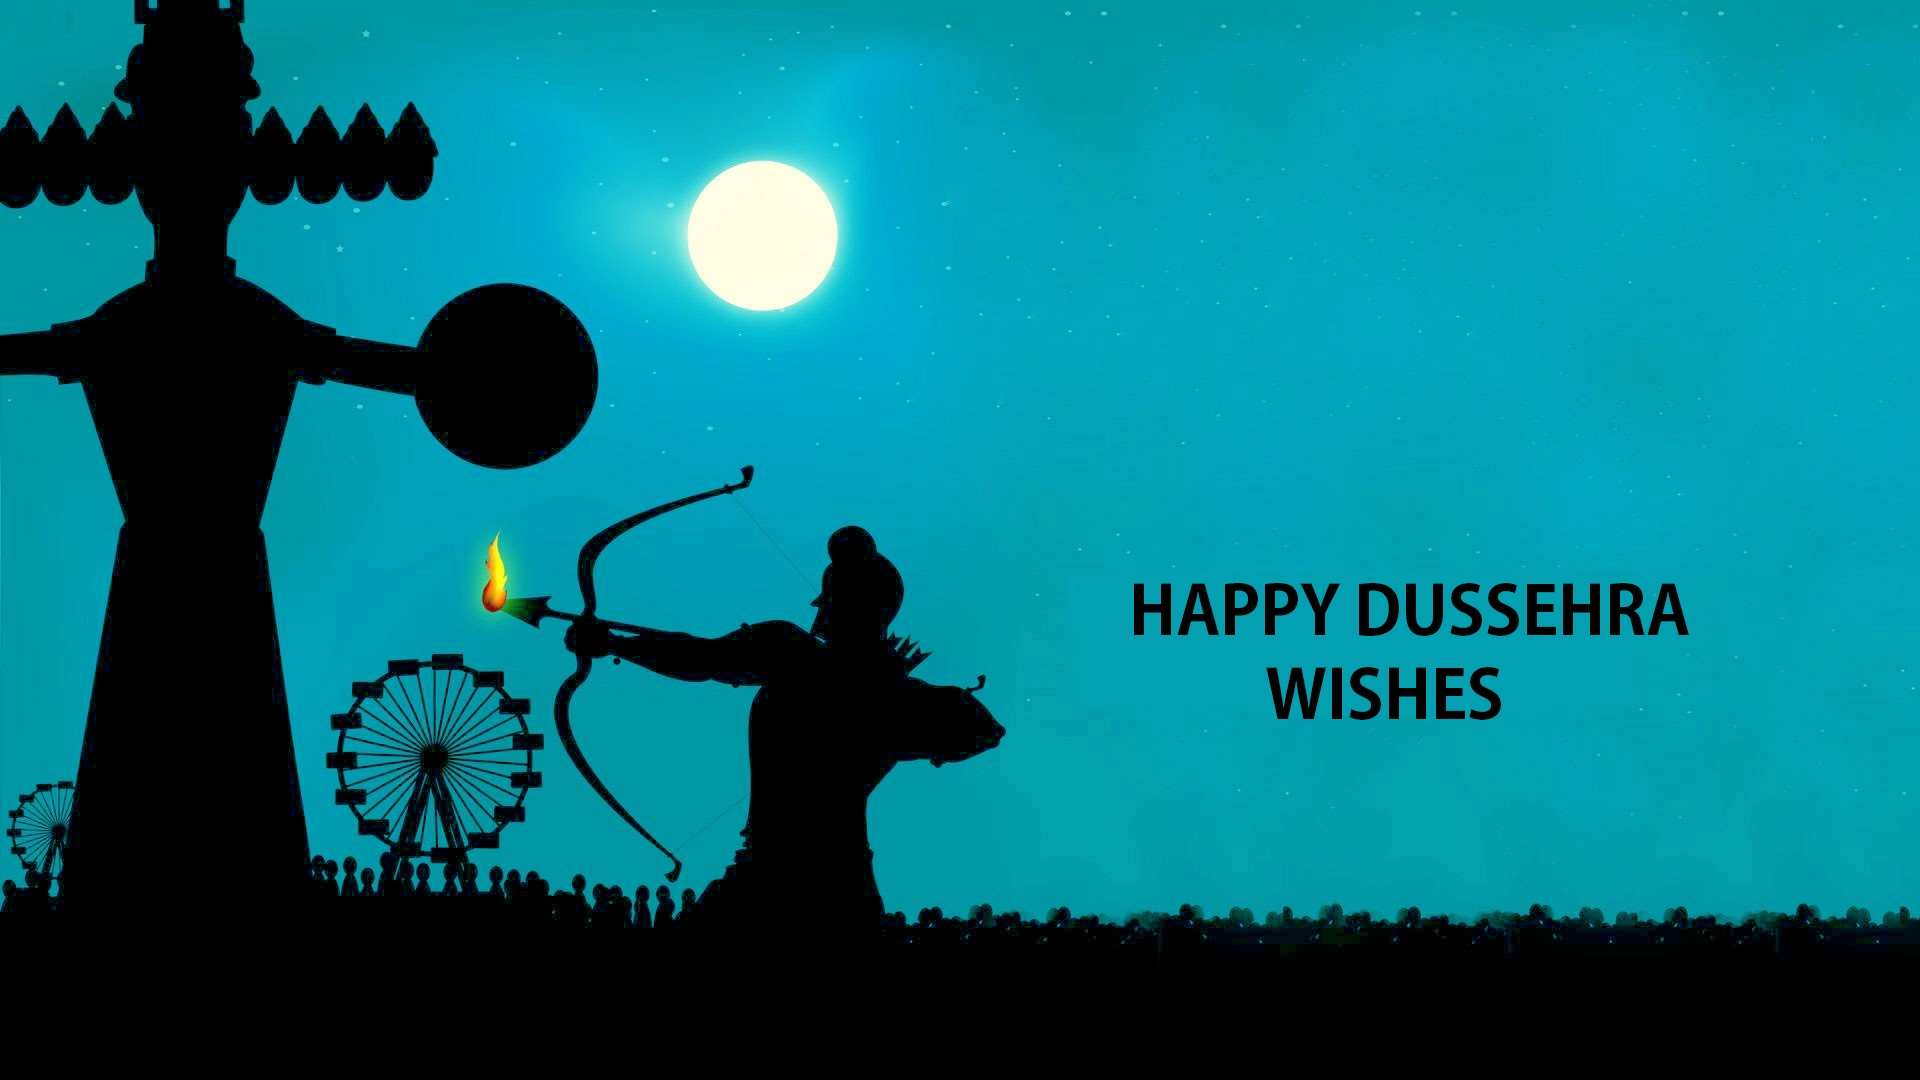 Happy Dussehradasara 2017 Wishes Sms Images Messages Greetings